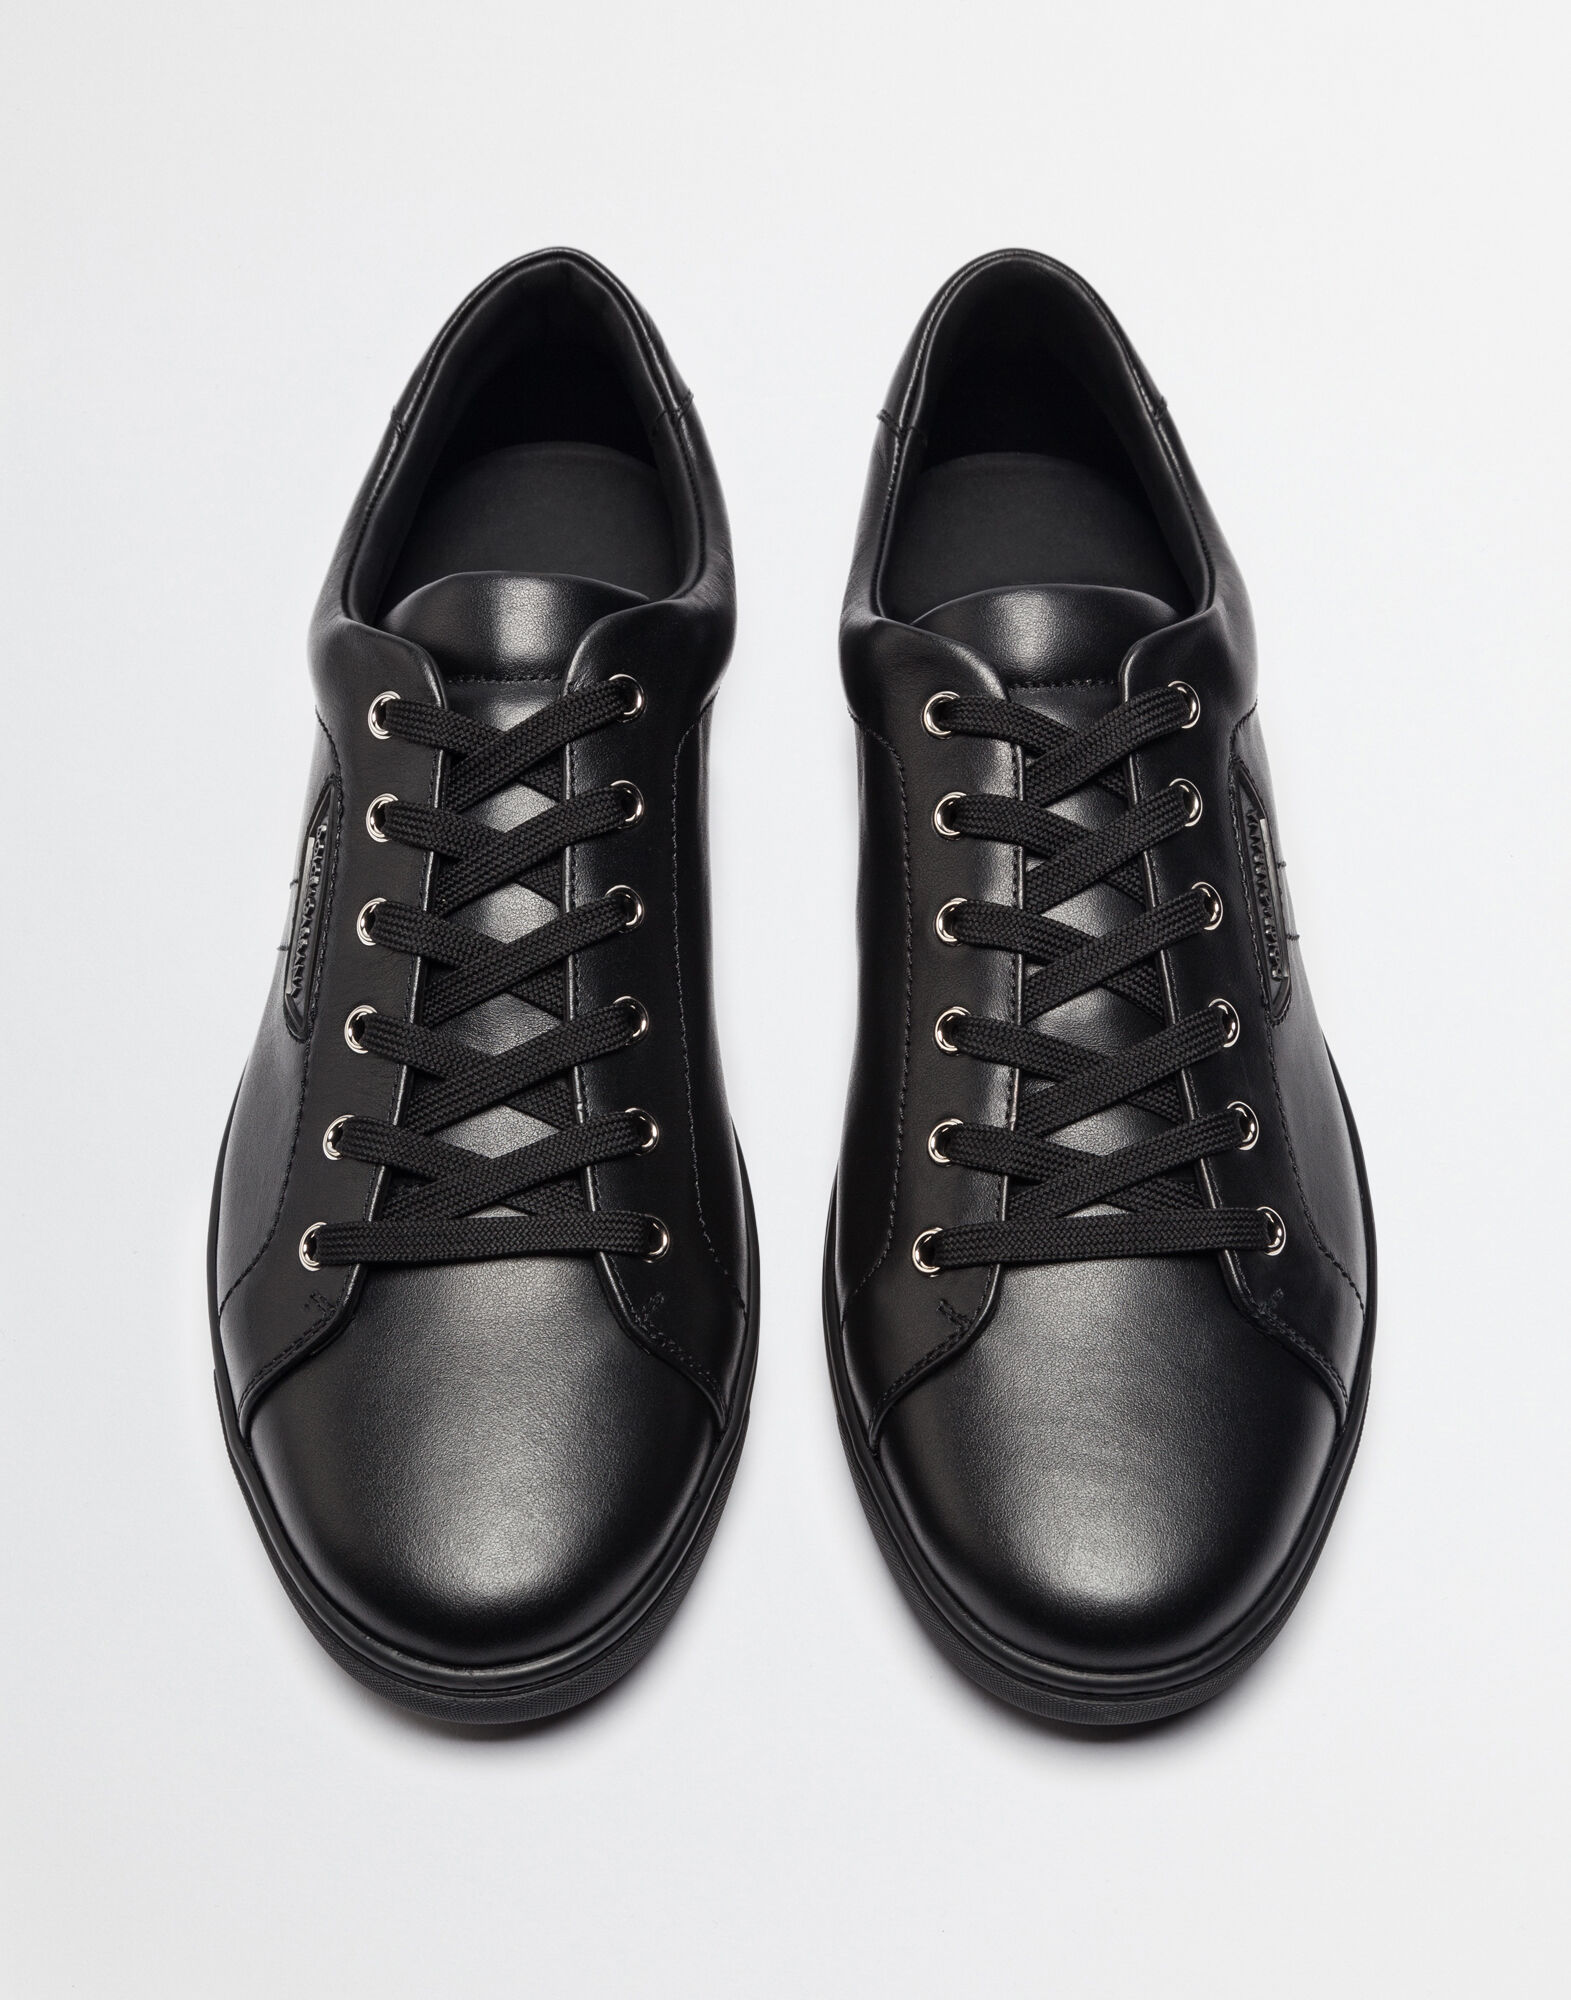 LONDON LEATHER SNEAKERS